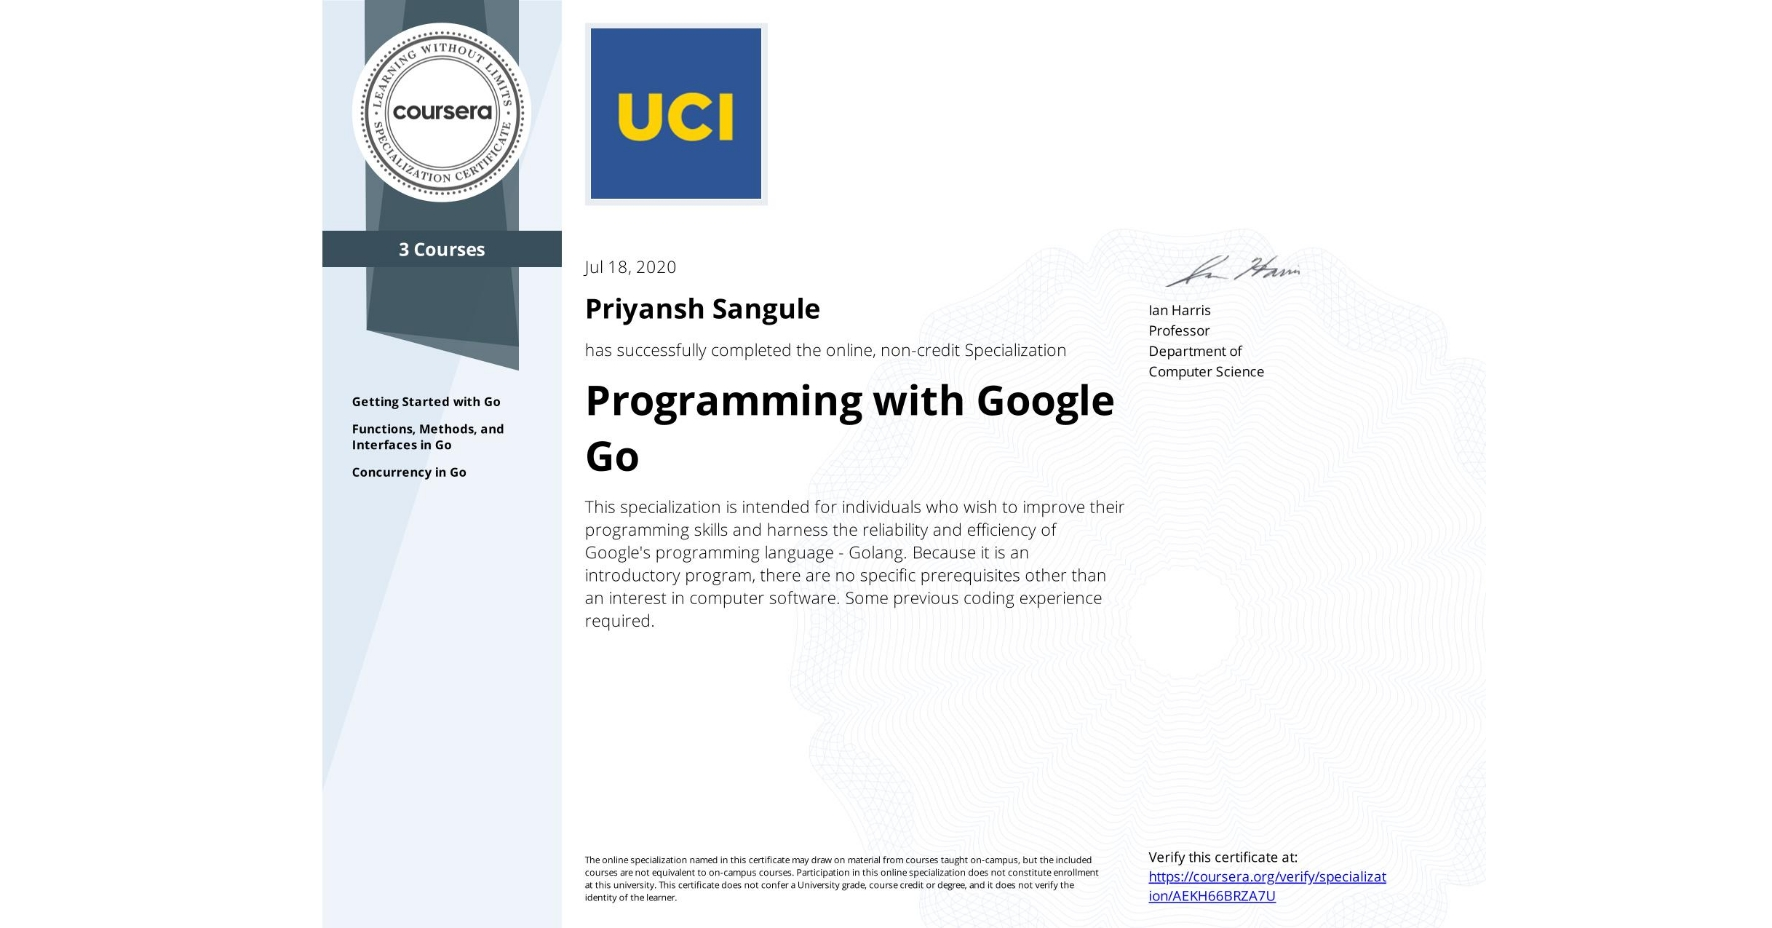 View certificate for Priyansh Sangule, Programming with Google Go, offered through Coursera. This specialization is intended for individuals who wish to improve their programming skills and harness the reliability and efficiency of Google's programming language - Golang. Because it is an introductory program, there are no specific prerequisites other than an interest in computer software. Some previous coding experience required.